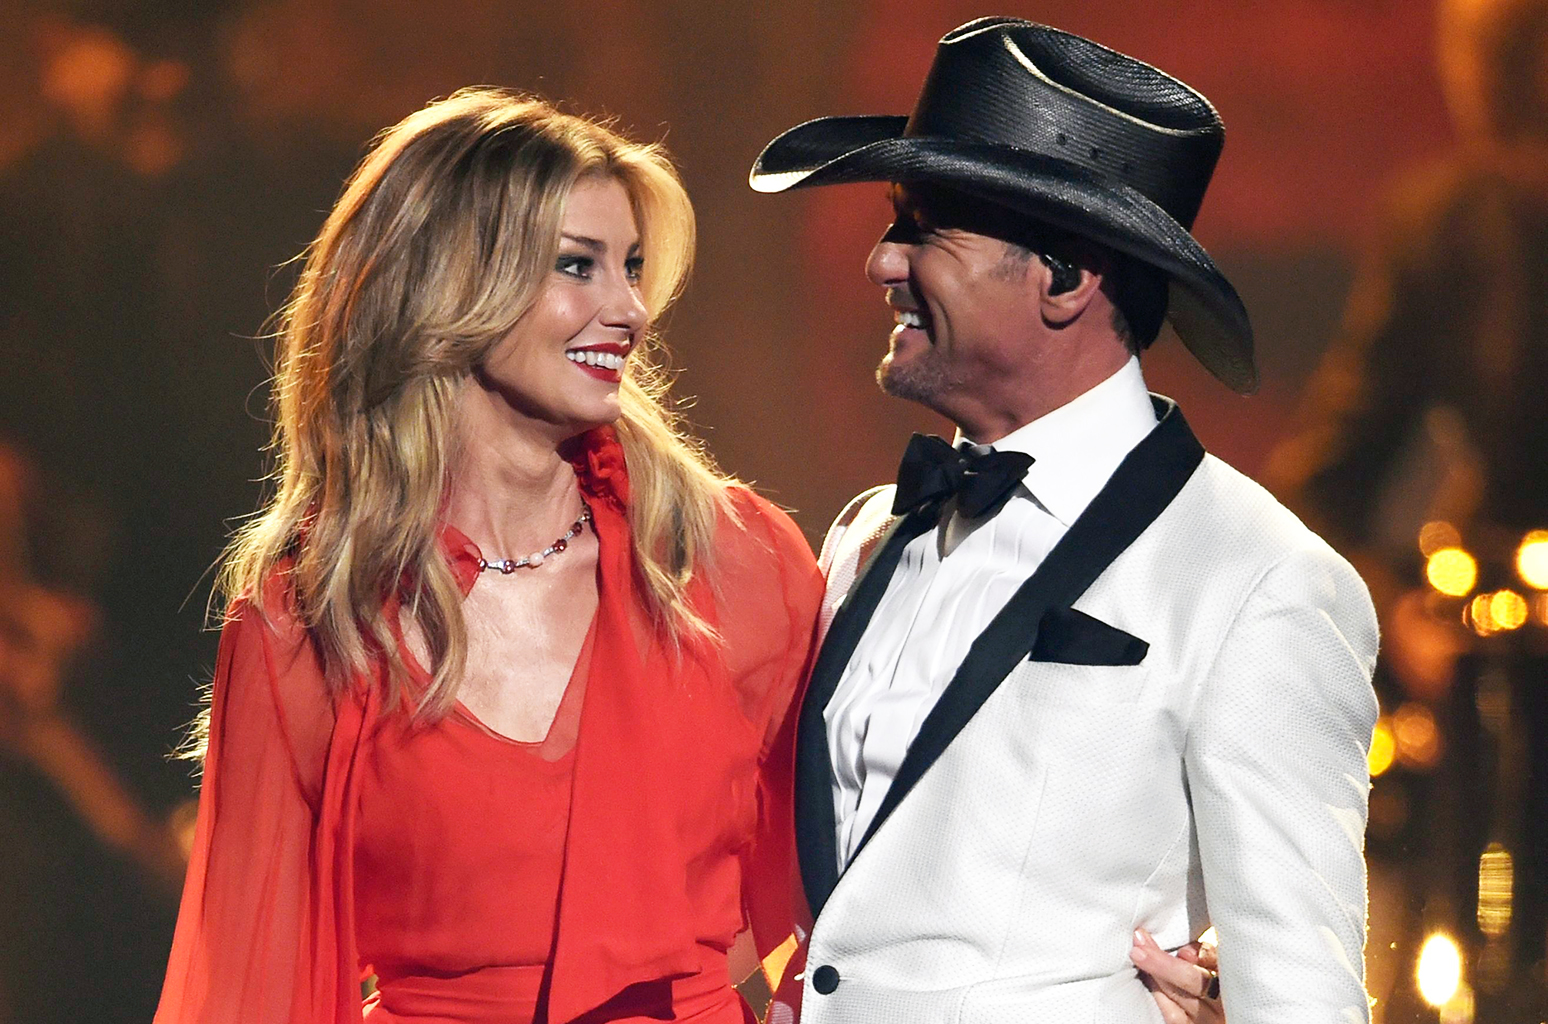 Tim and faith looking at each other